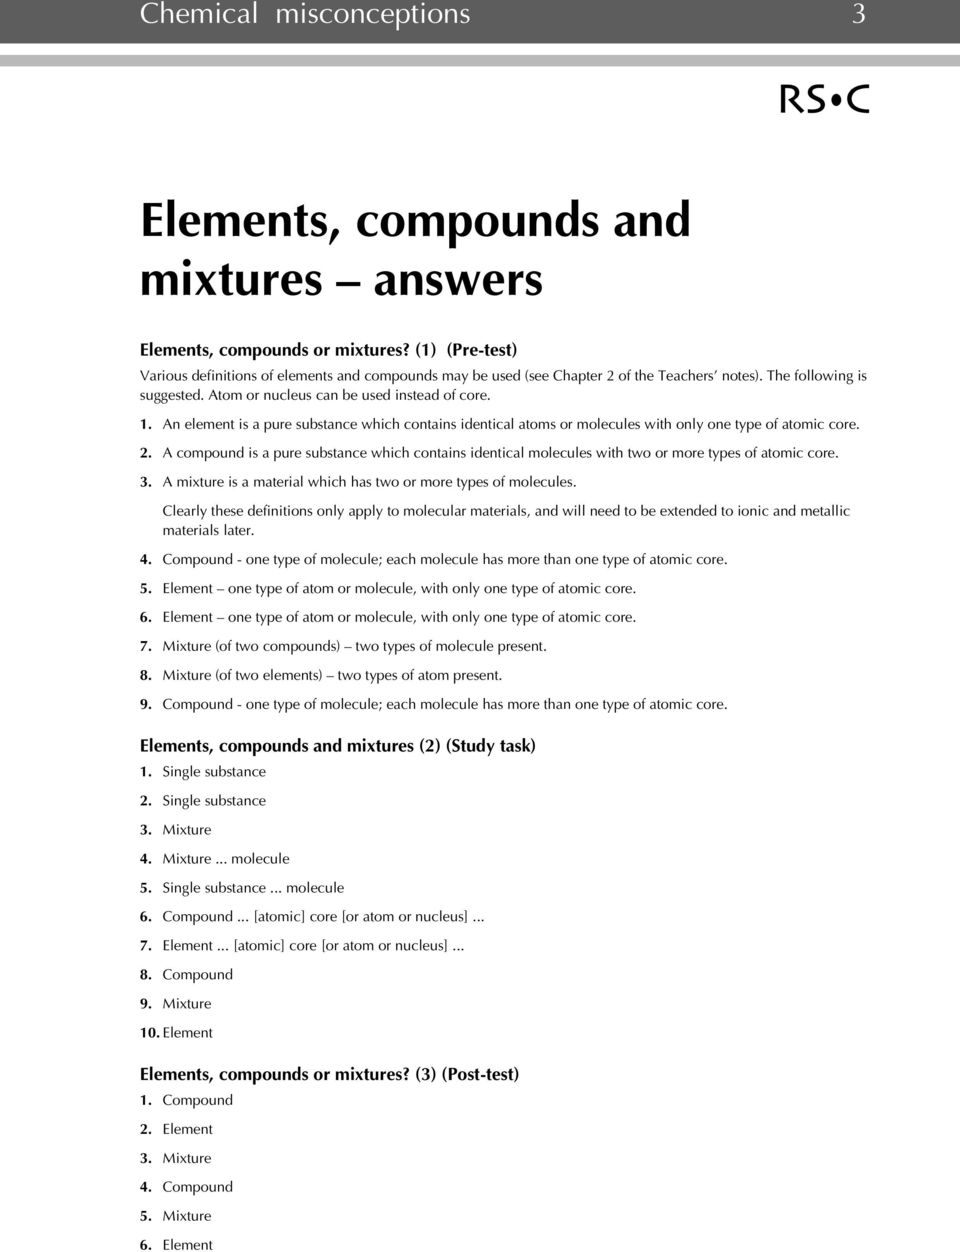 Elements, compounds and mixtures - PDF